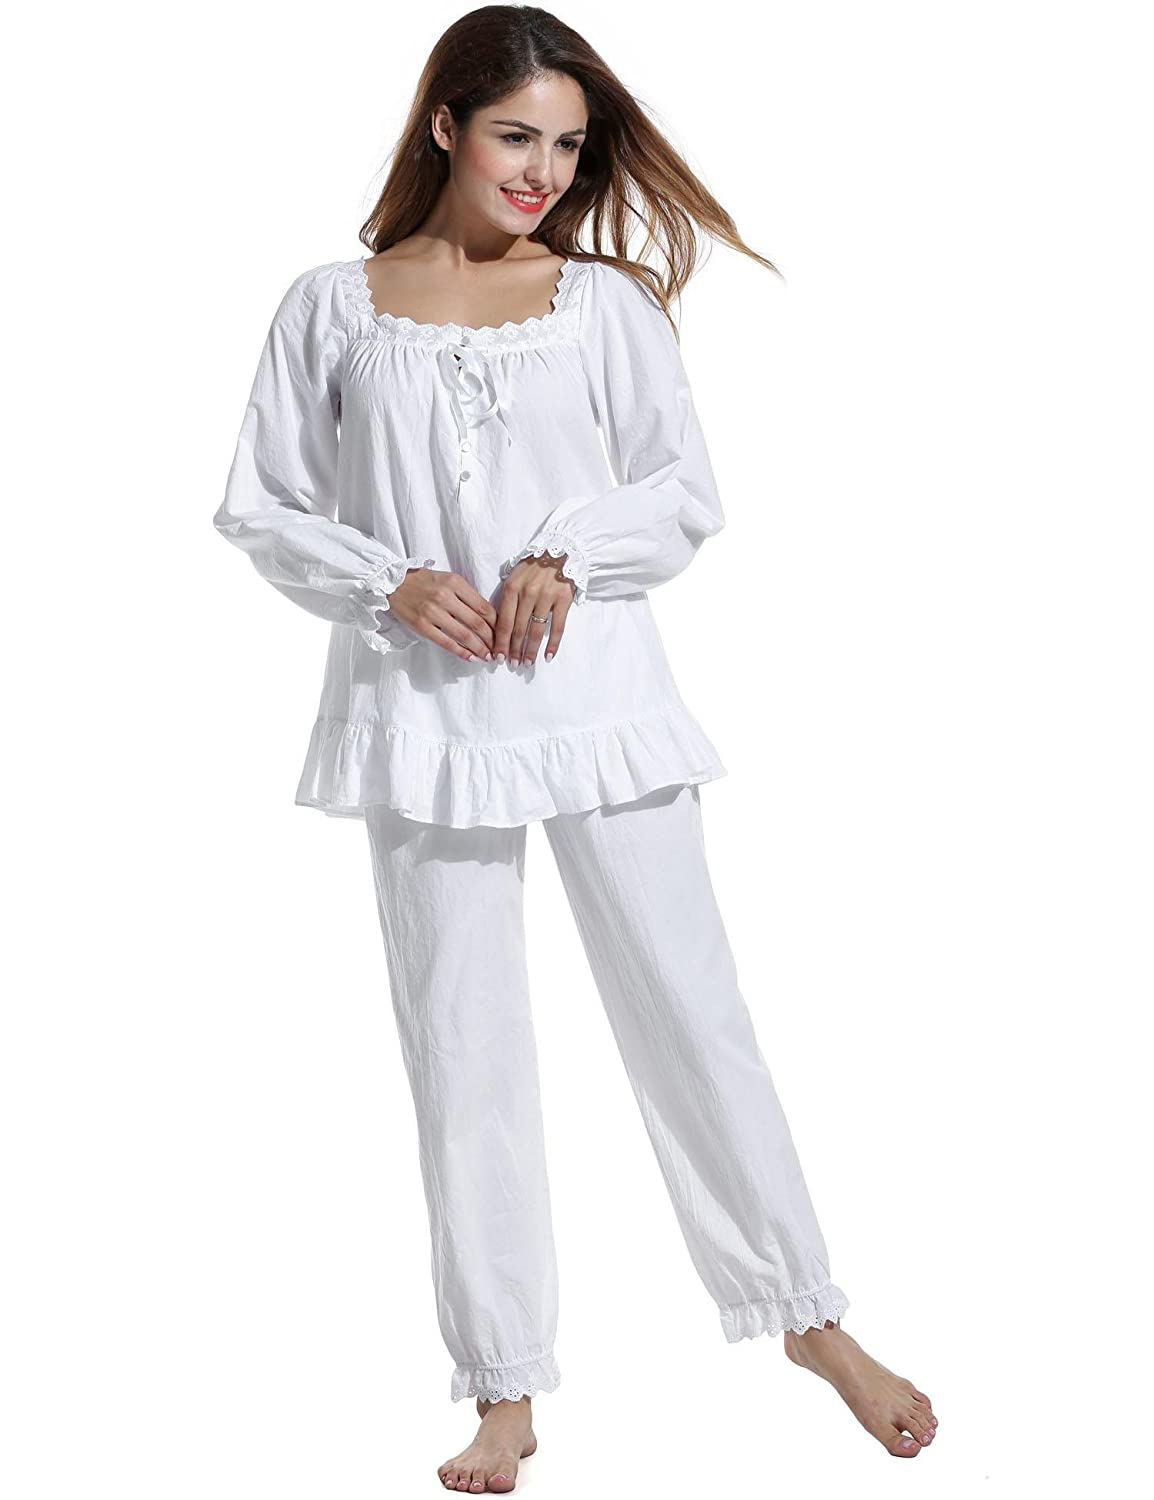 da2ee5fd864 L amore Womens Victorian Comfort Cotton Pajama Set Comfort Sleepwear pjs  with Pj Pants at Amazon Women s Clothing store